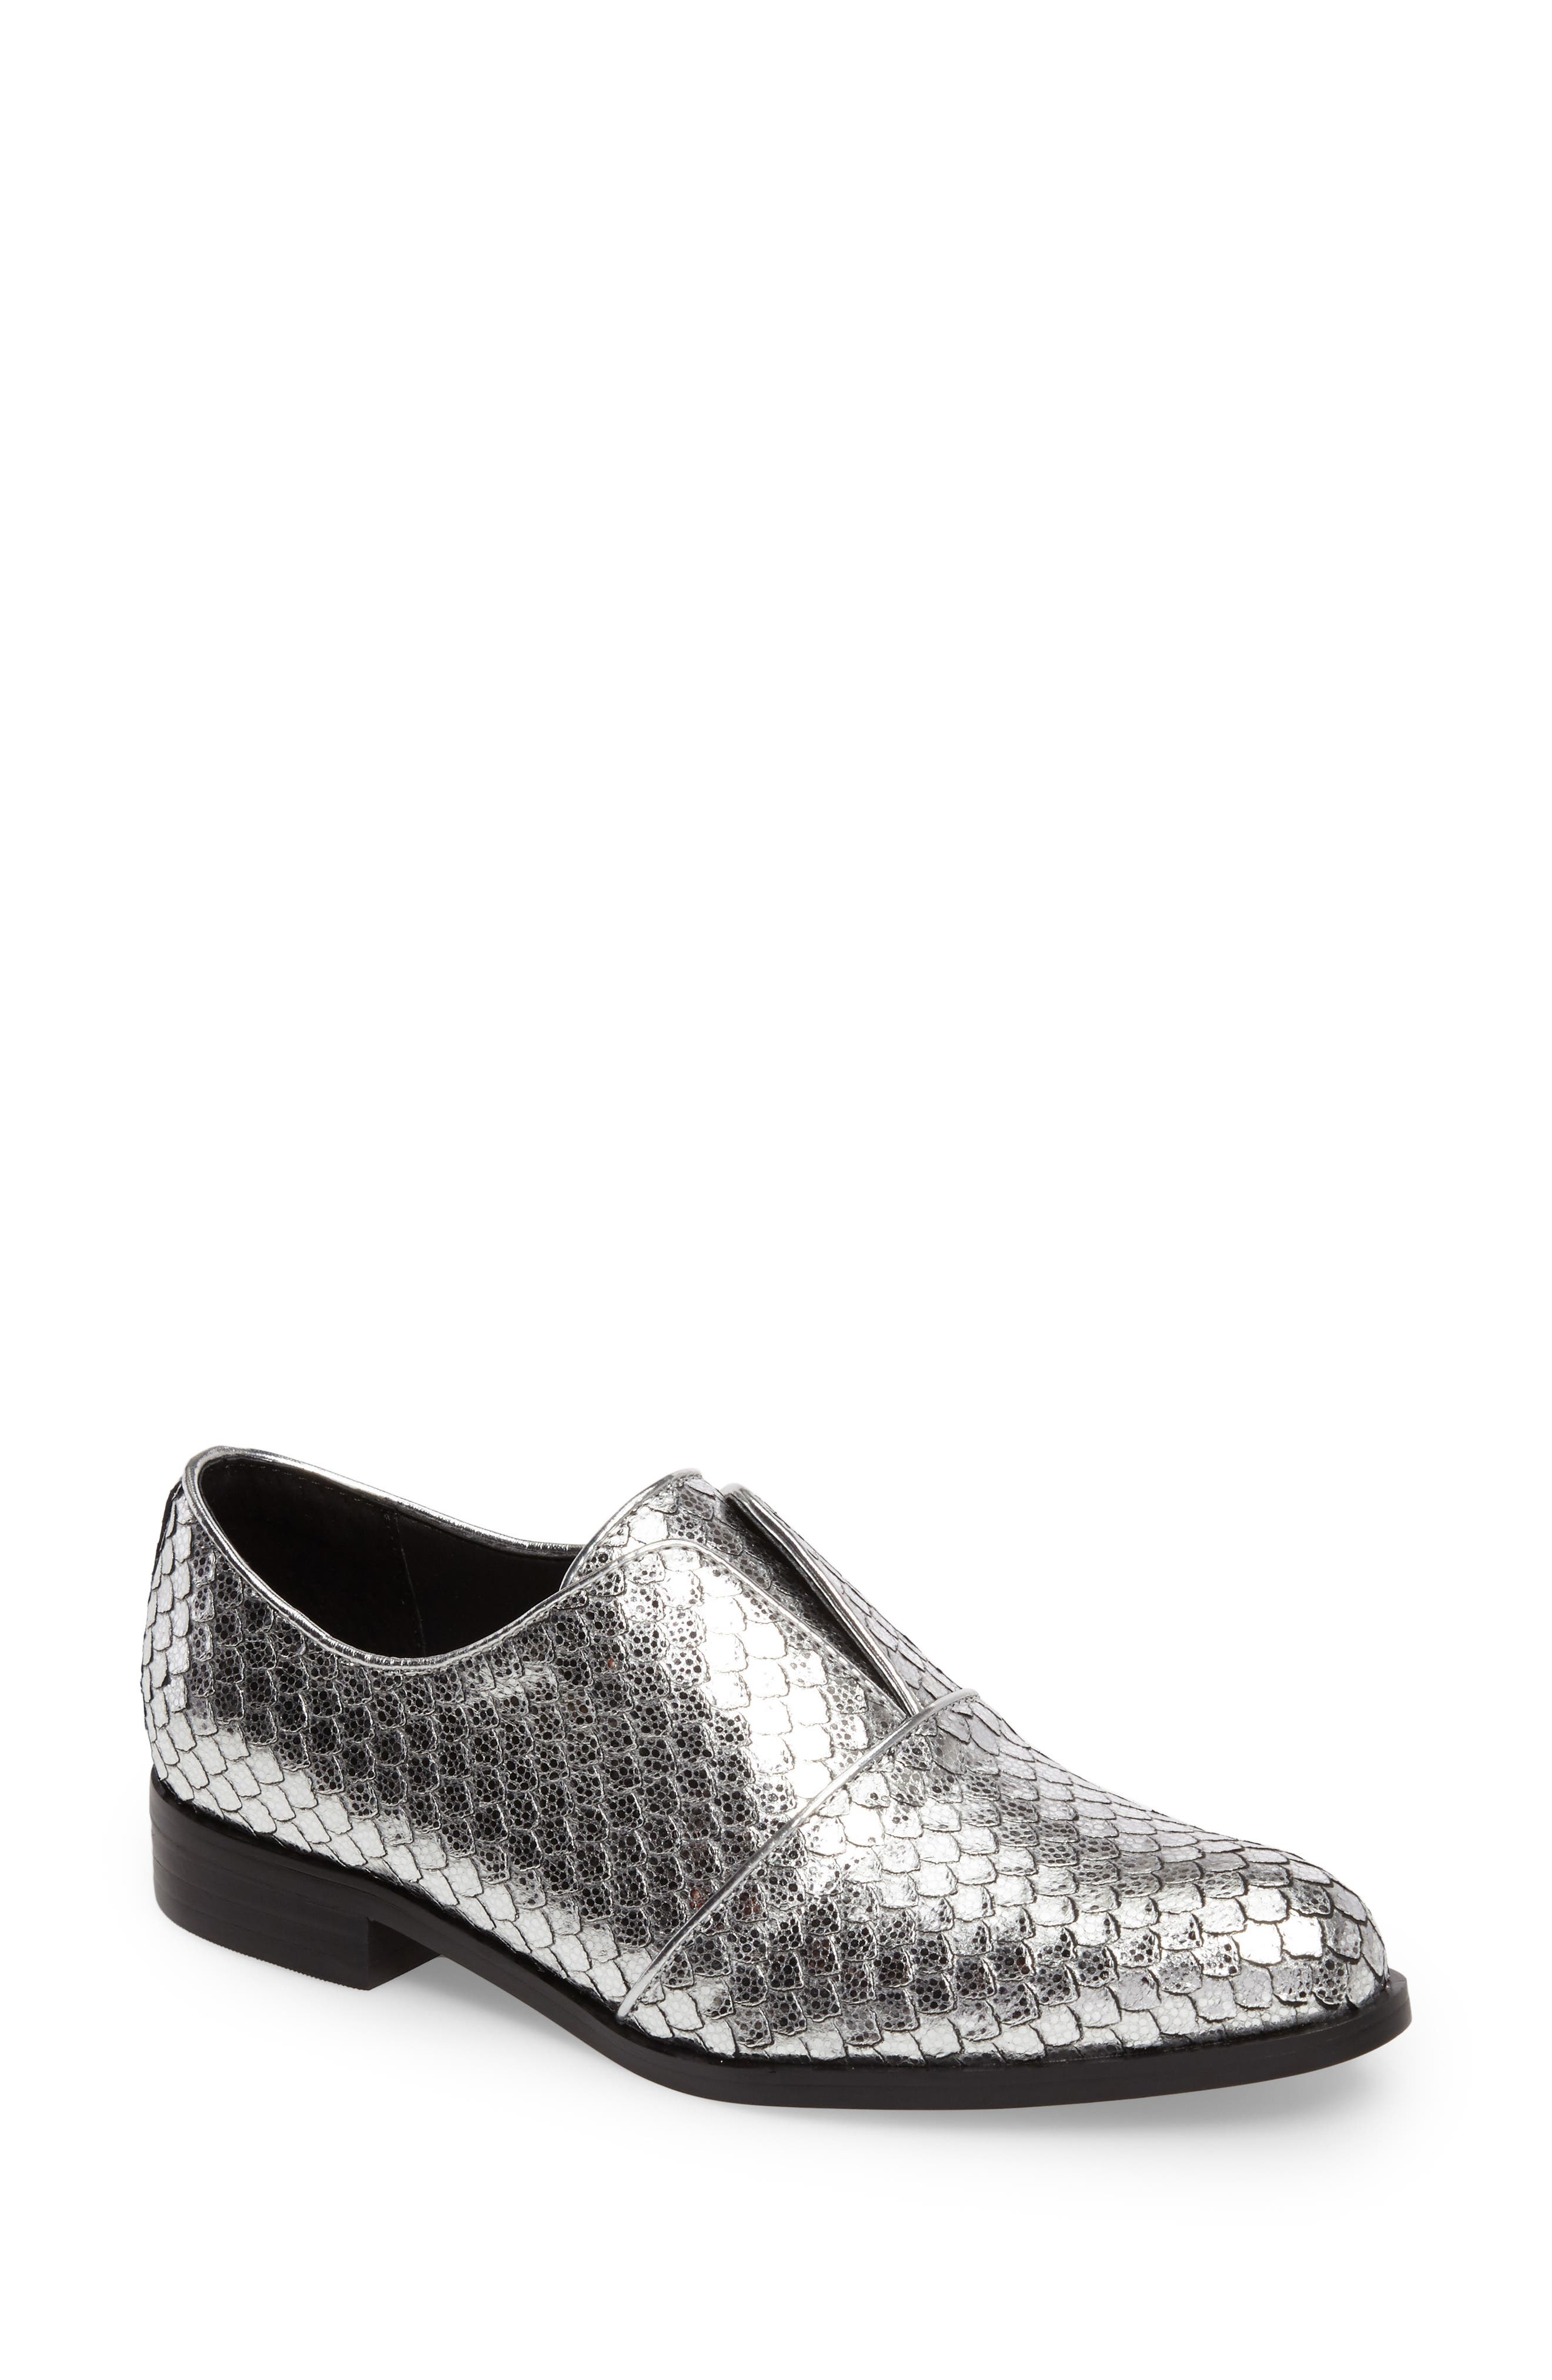 Isola Maria Slip-On Oxford,                             Main thumbnail 1, color,                             Silver Cut Snake Print Leather